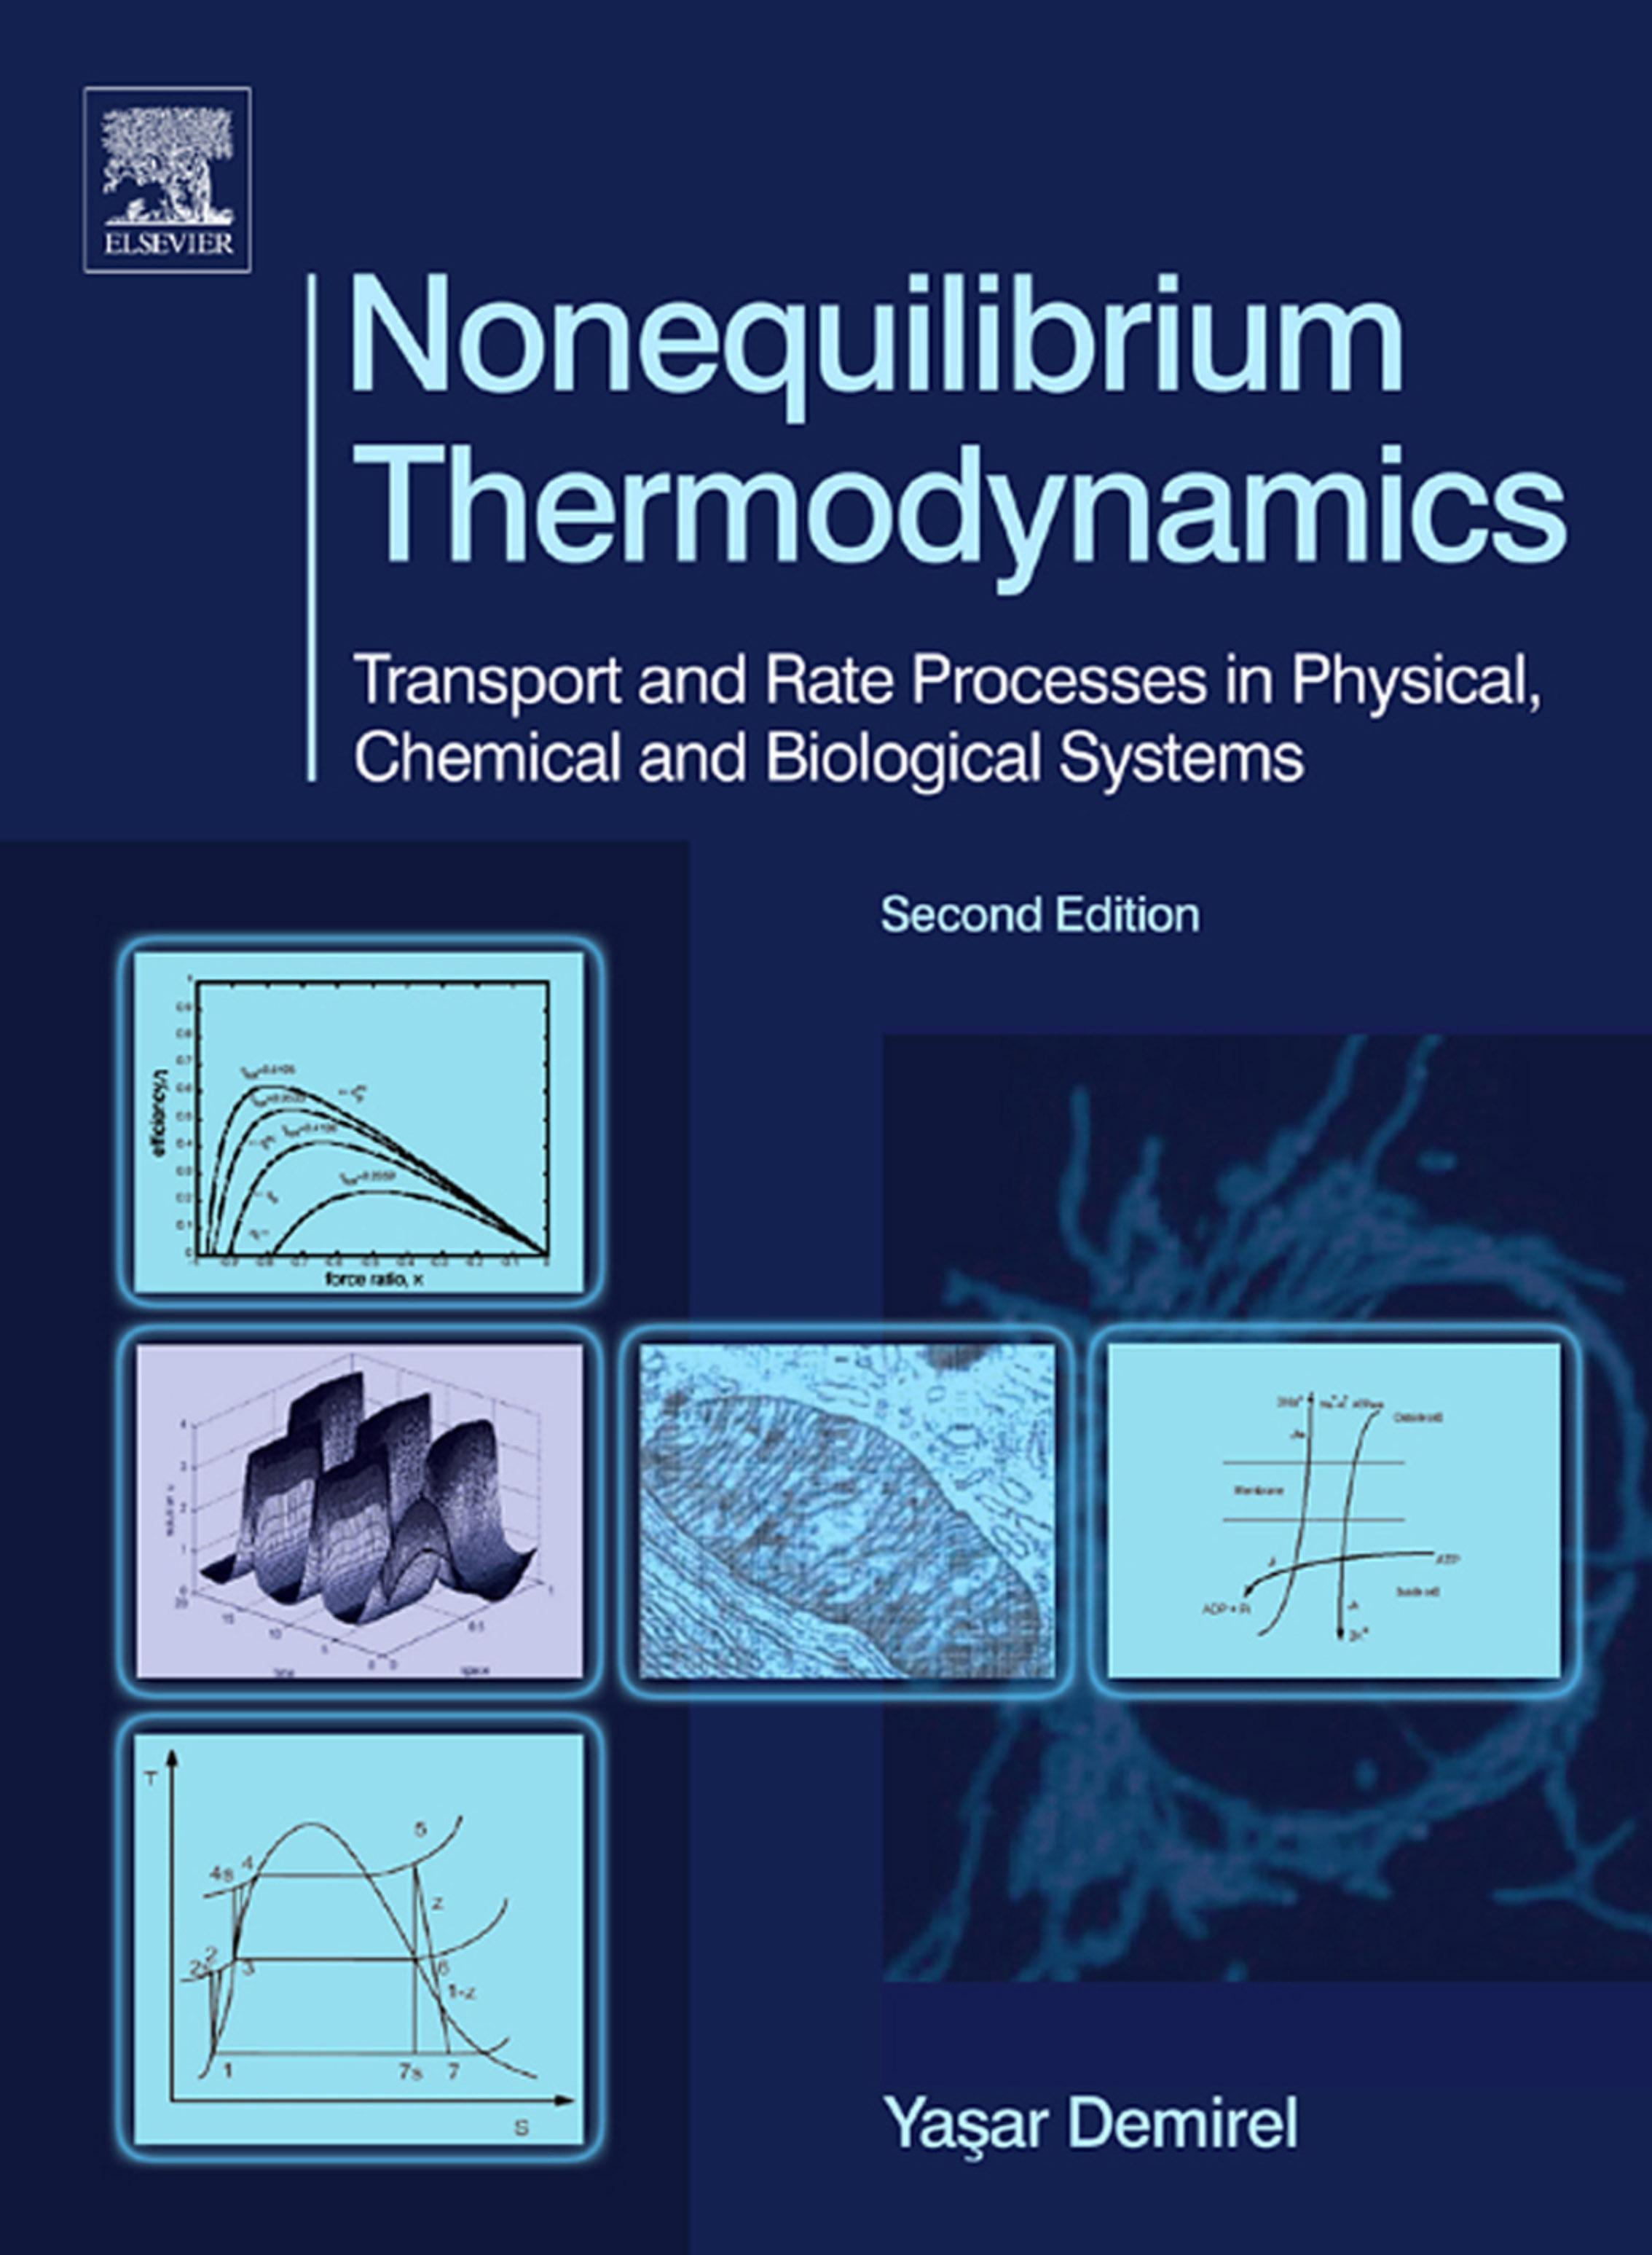 Nonequilibrium Thermodynamics: Transport and Rate Processes in Physical, Chemical and Biological Systems EB9780080551364